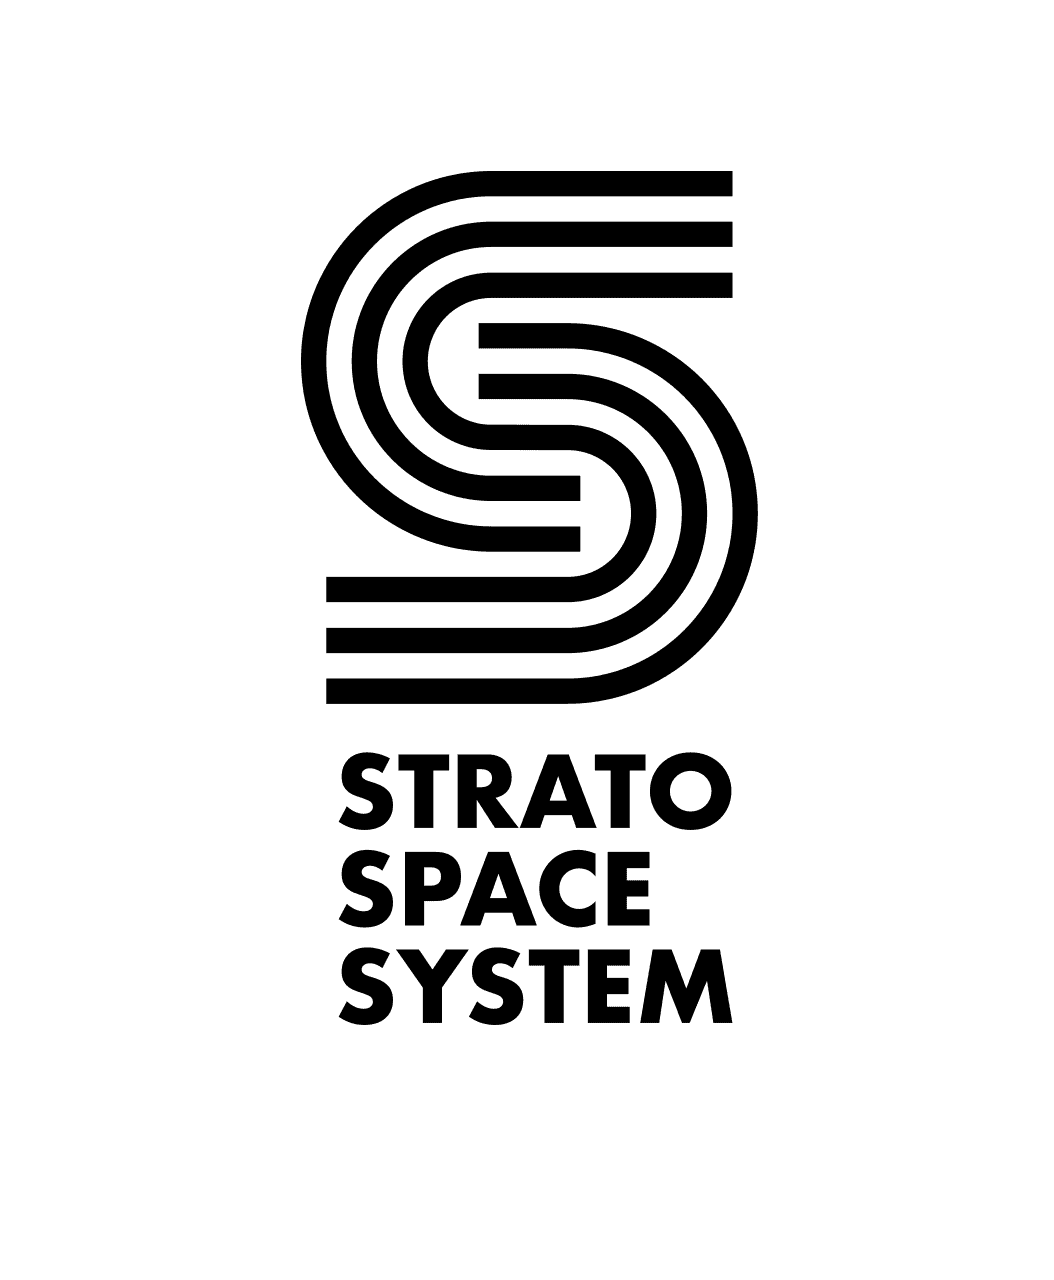 STRATO SPACE SYSTEM